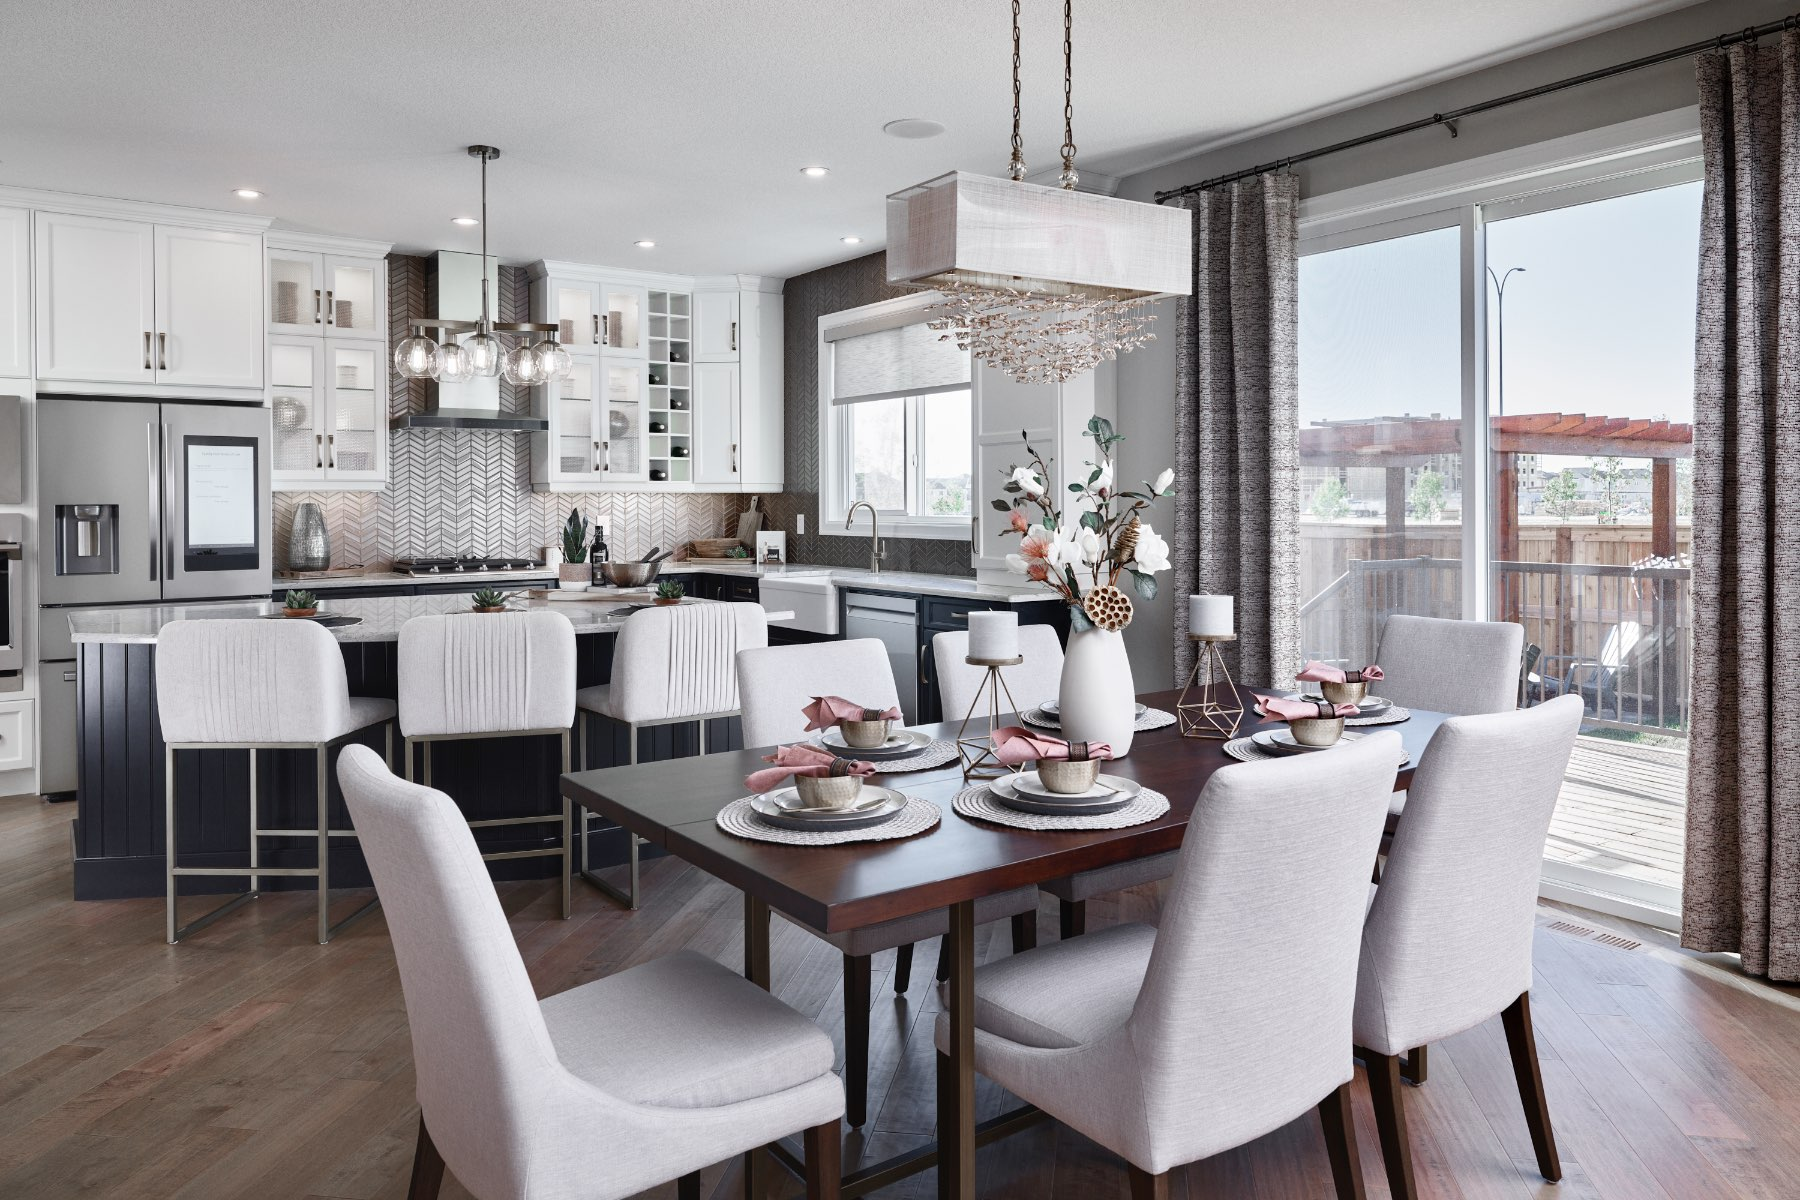 Cline Plan Kitchen at Cityscape in Calgary Alberta by Mattamy Homes